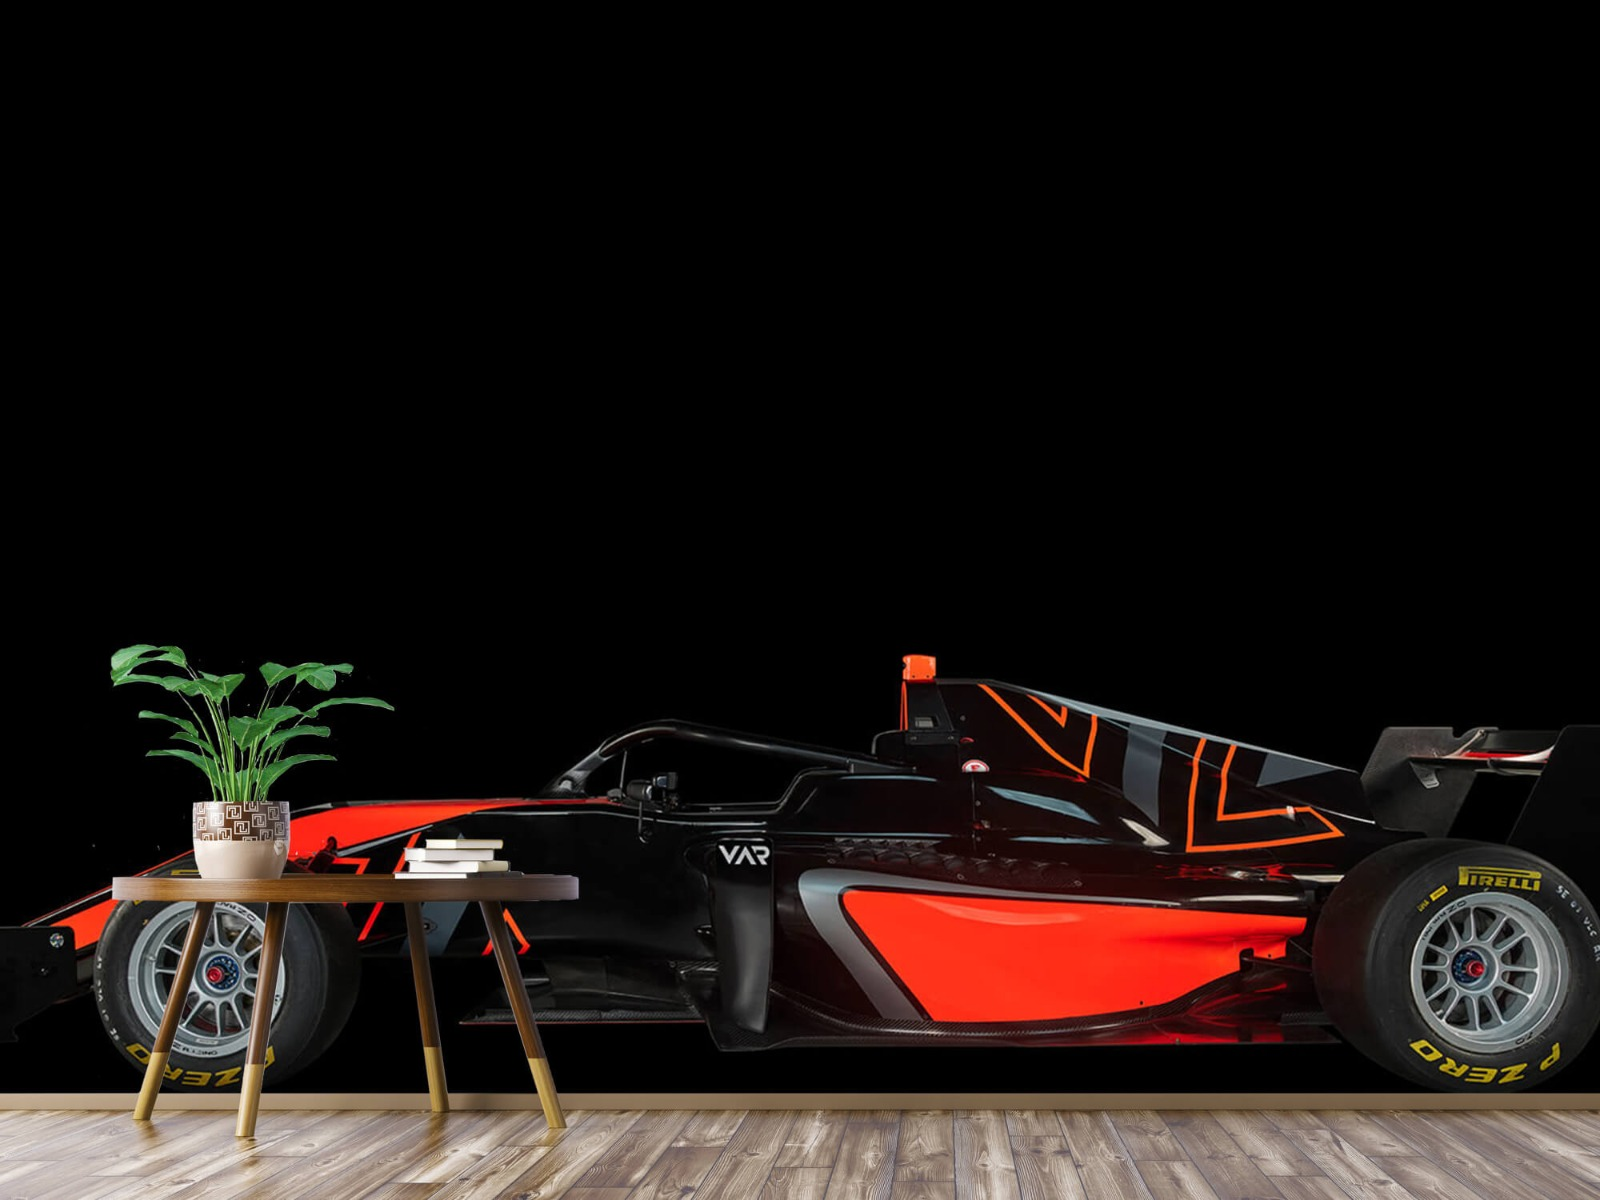 Sportauto's - Formule 3 - Lower side view - dark - Tienerkamer 4